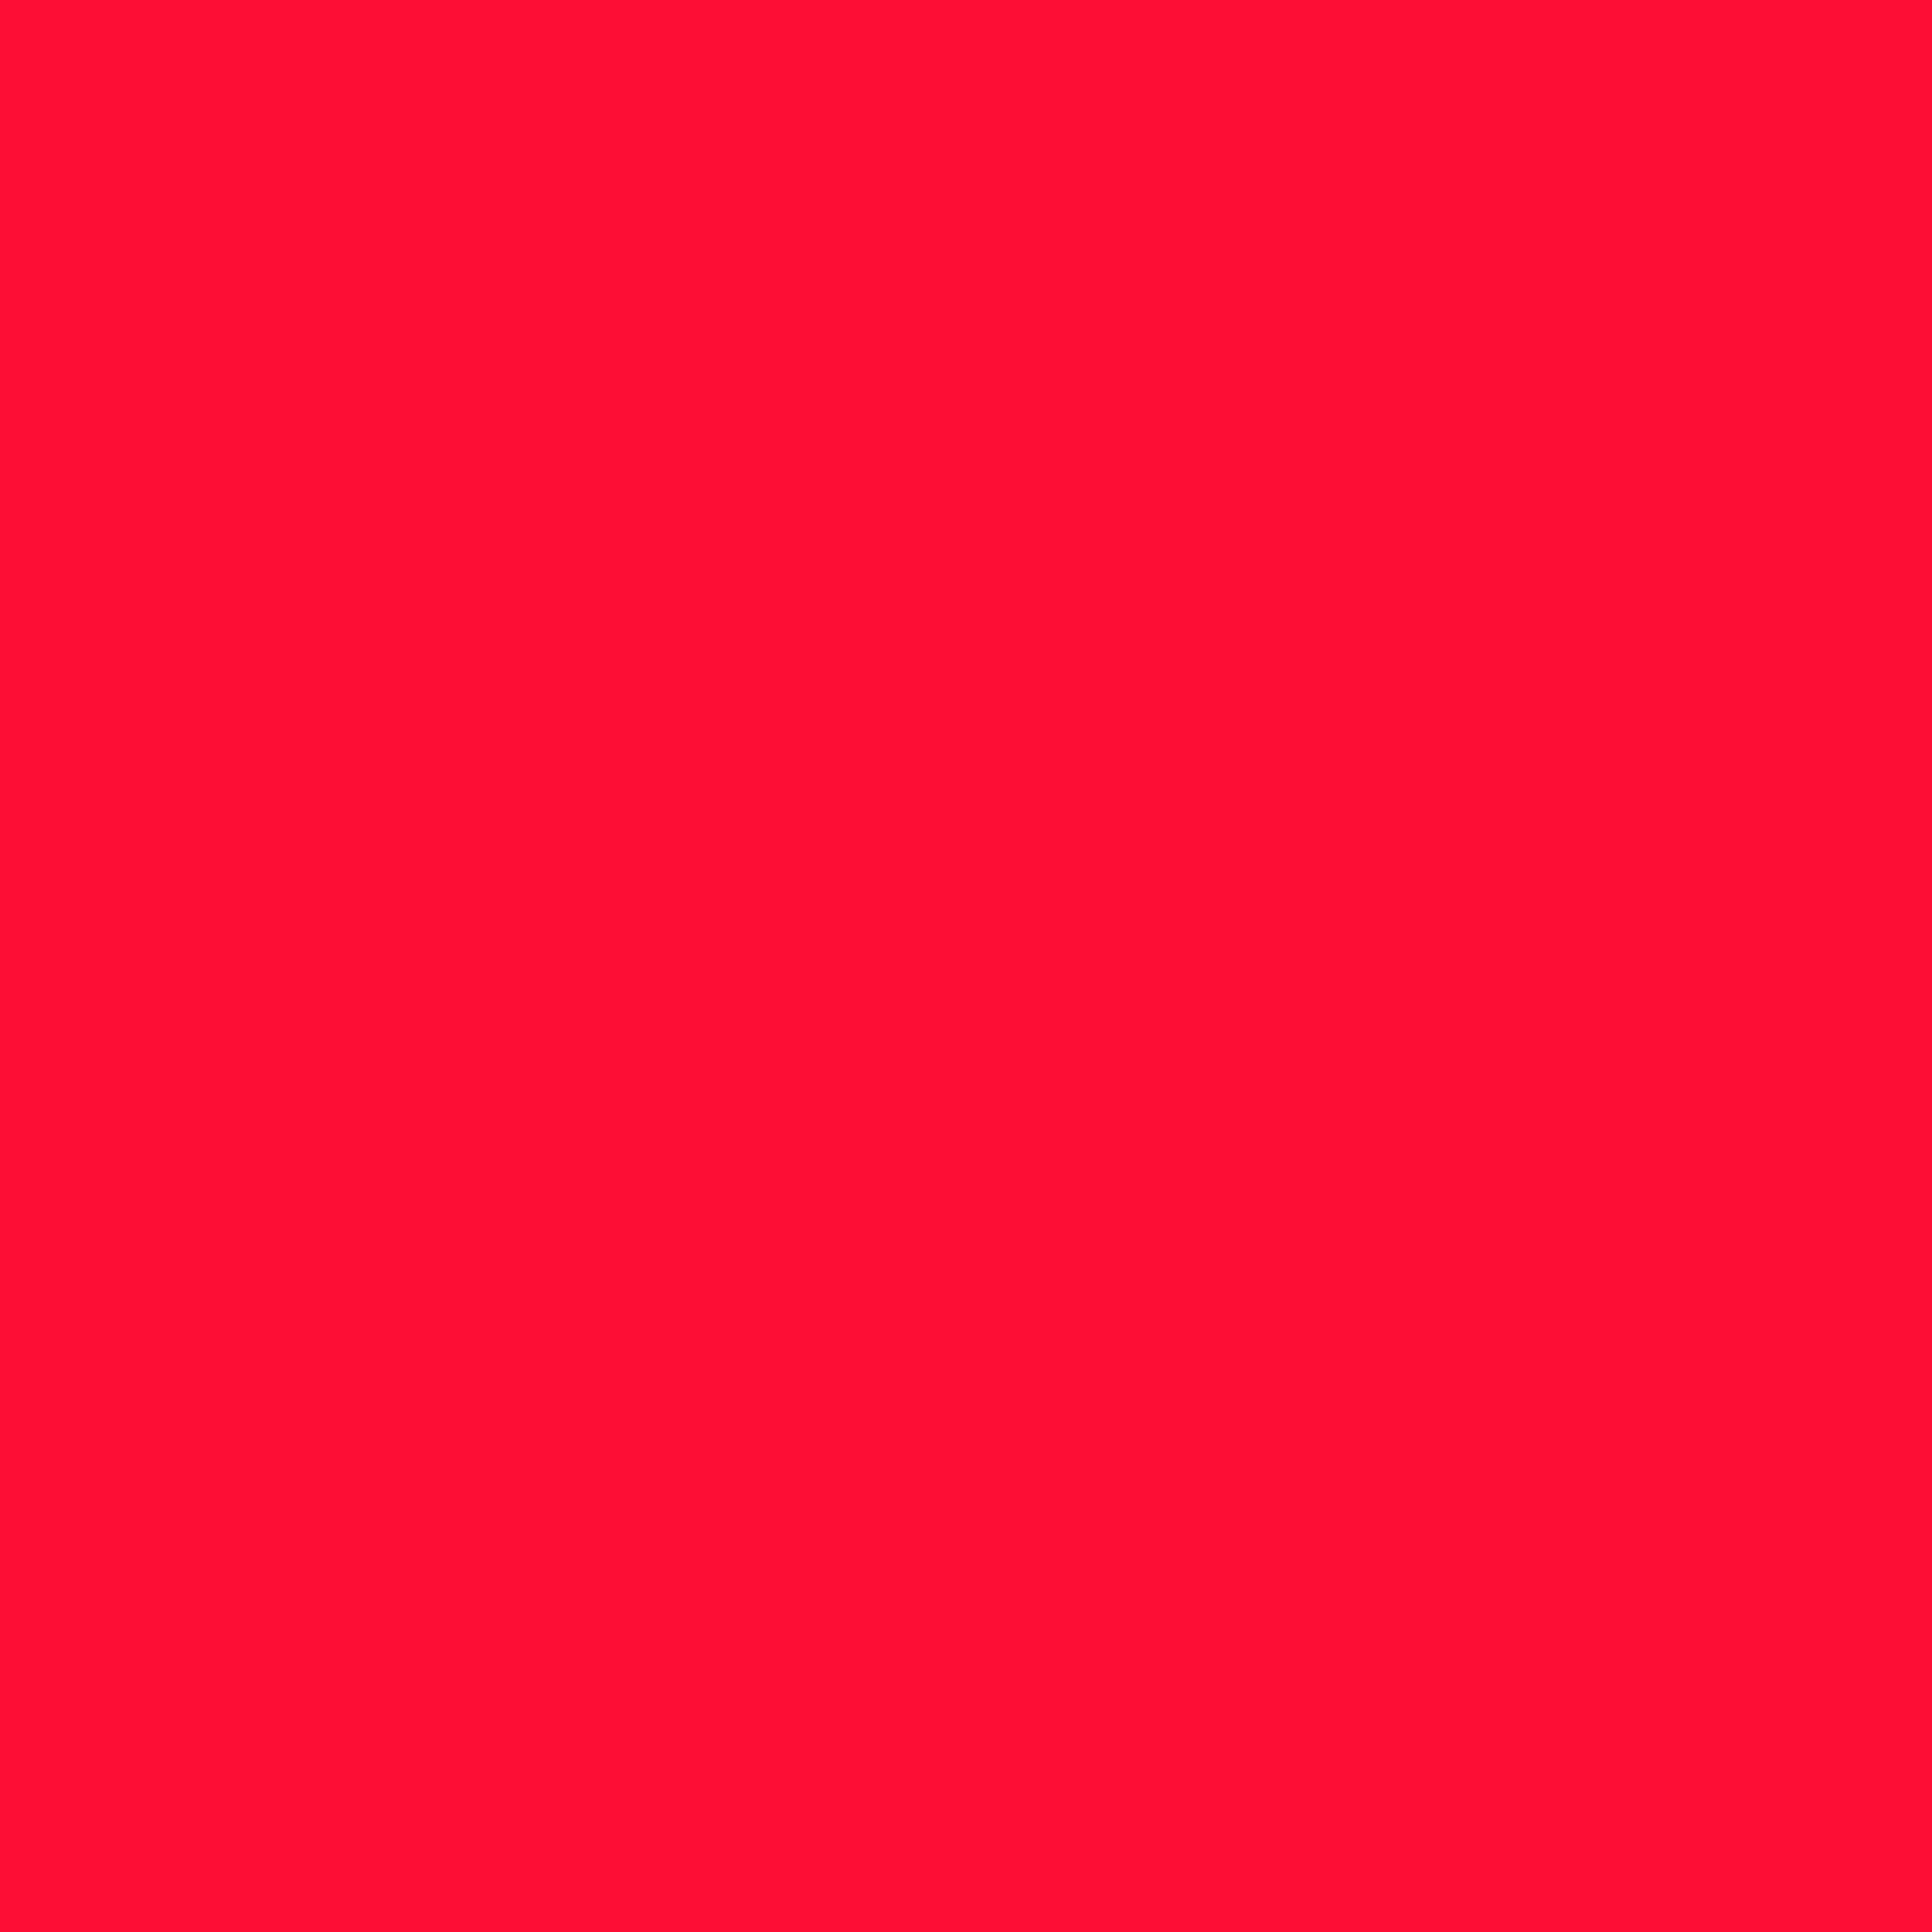 2732x2732 Tractor Red Solid Color Background